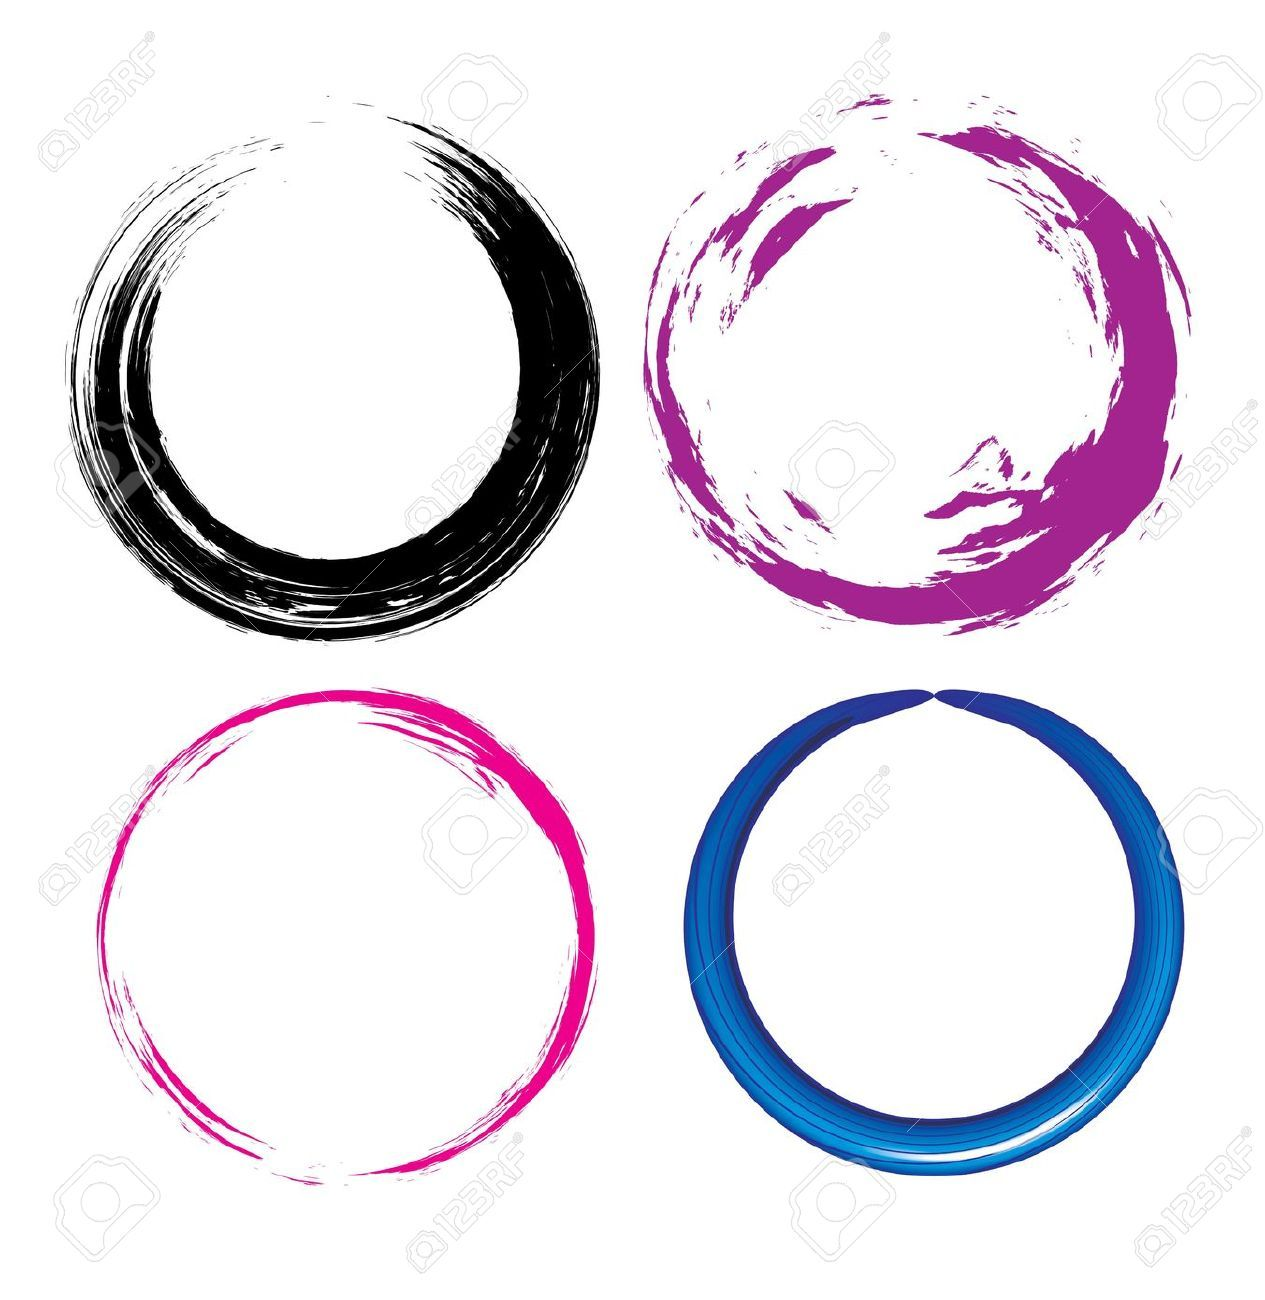 6691146 Four Different Grunge Circle With Place For Your Text Vector Illustration Stock Vector Jpg 1265 1300 Circle Tattoos Circular Tattoo Circle Art